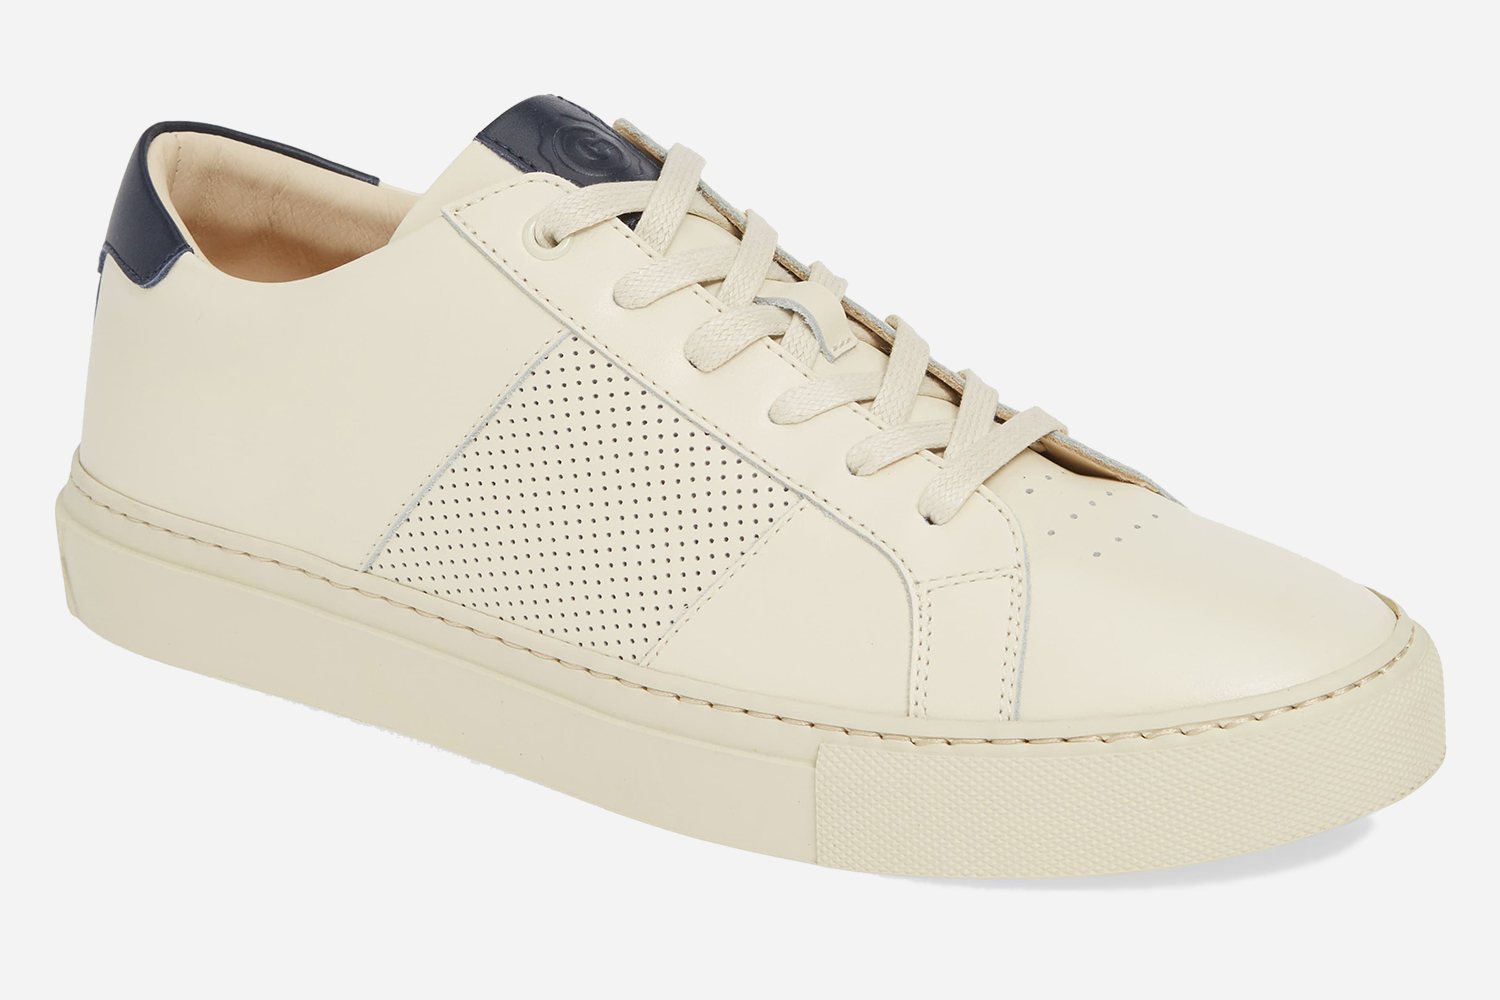 You Need New Sneakers and These Greats Are $60 Off - InsideHook